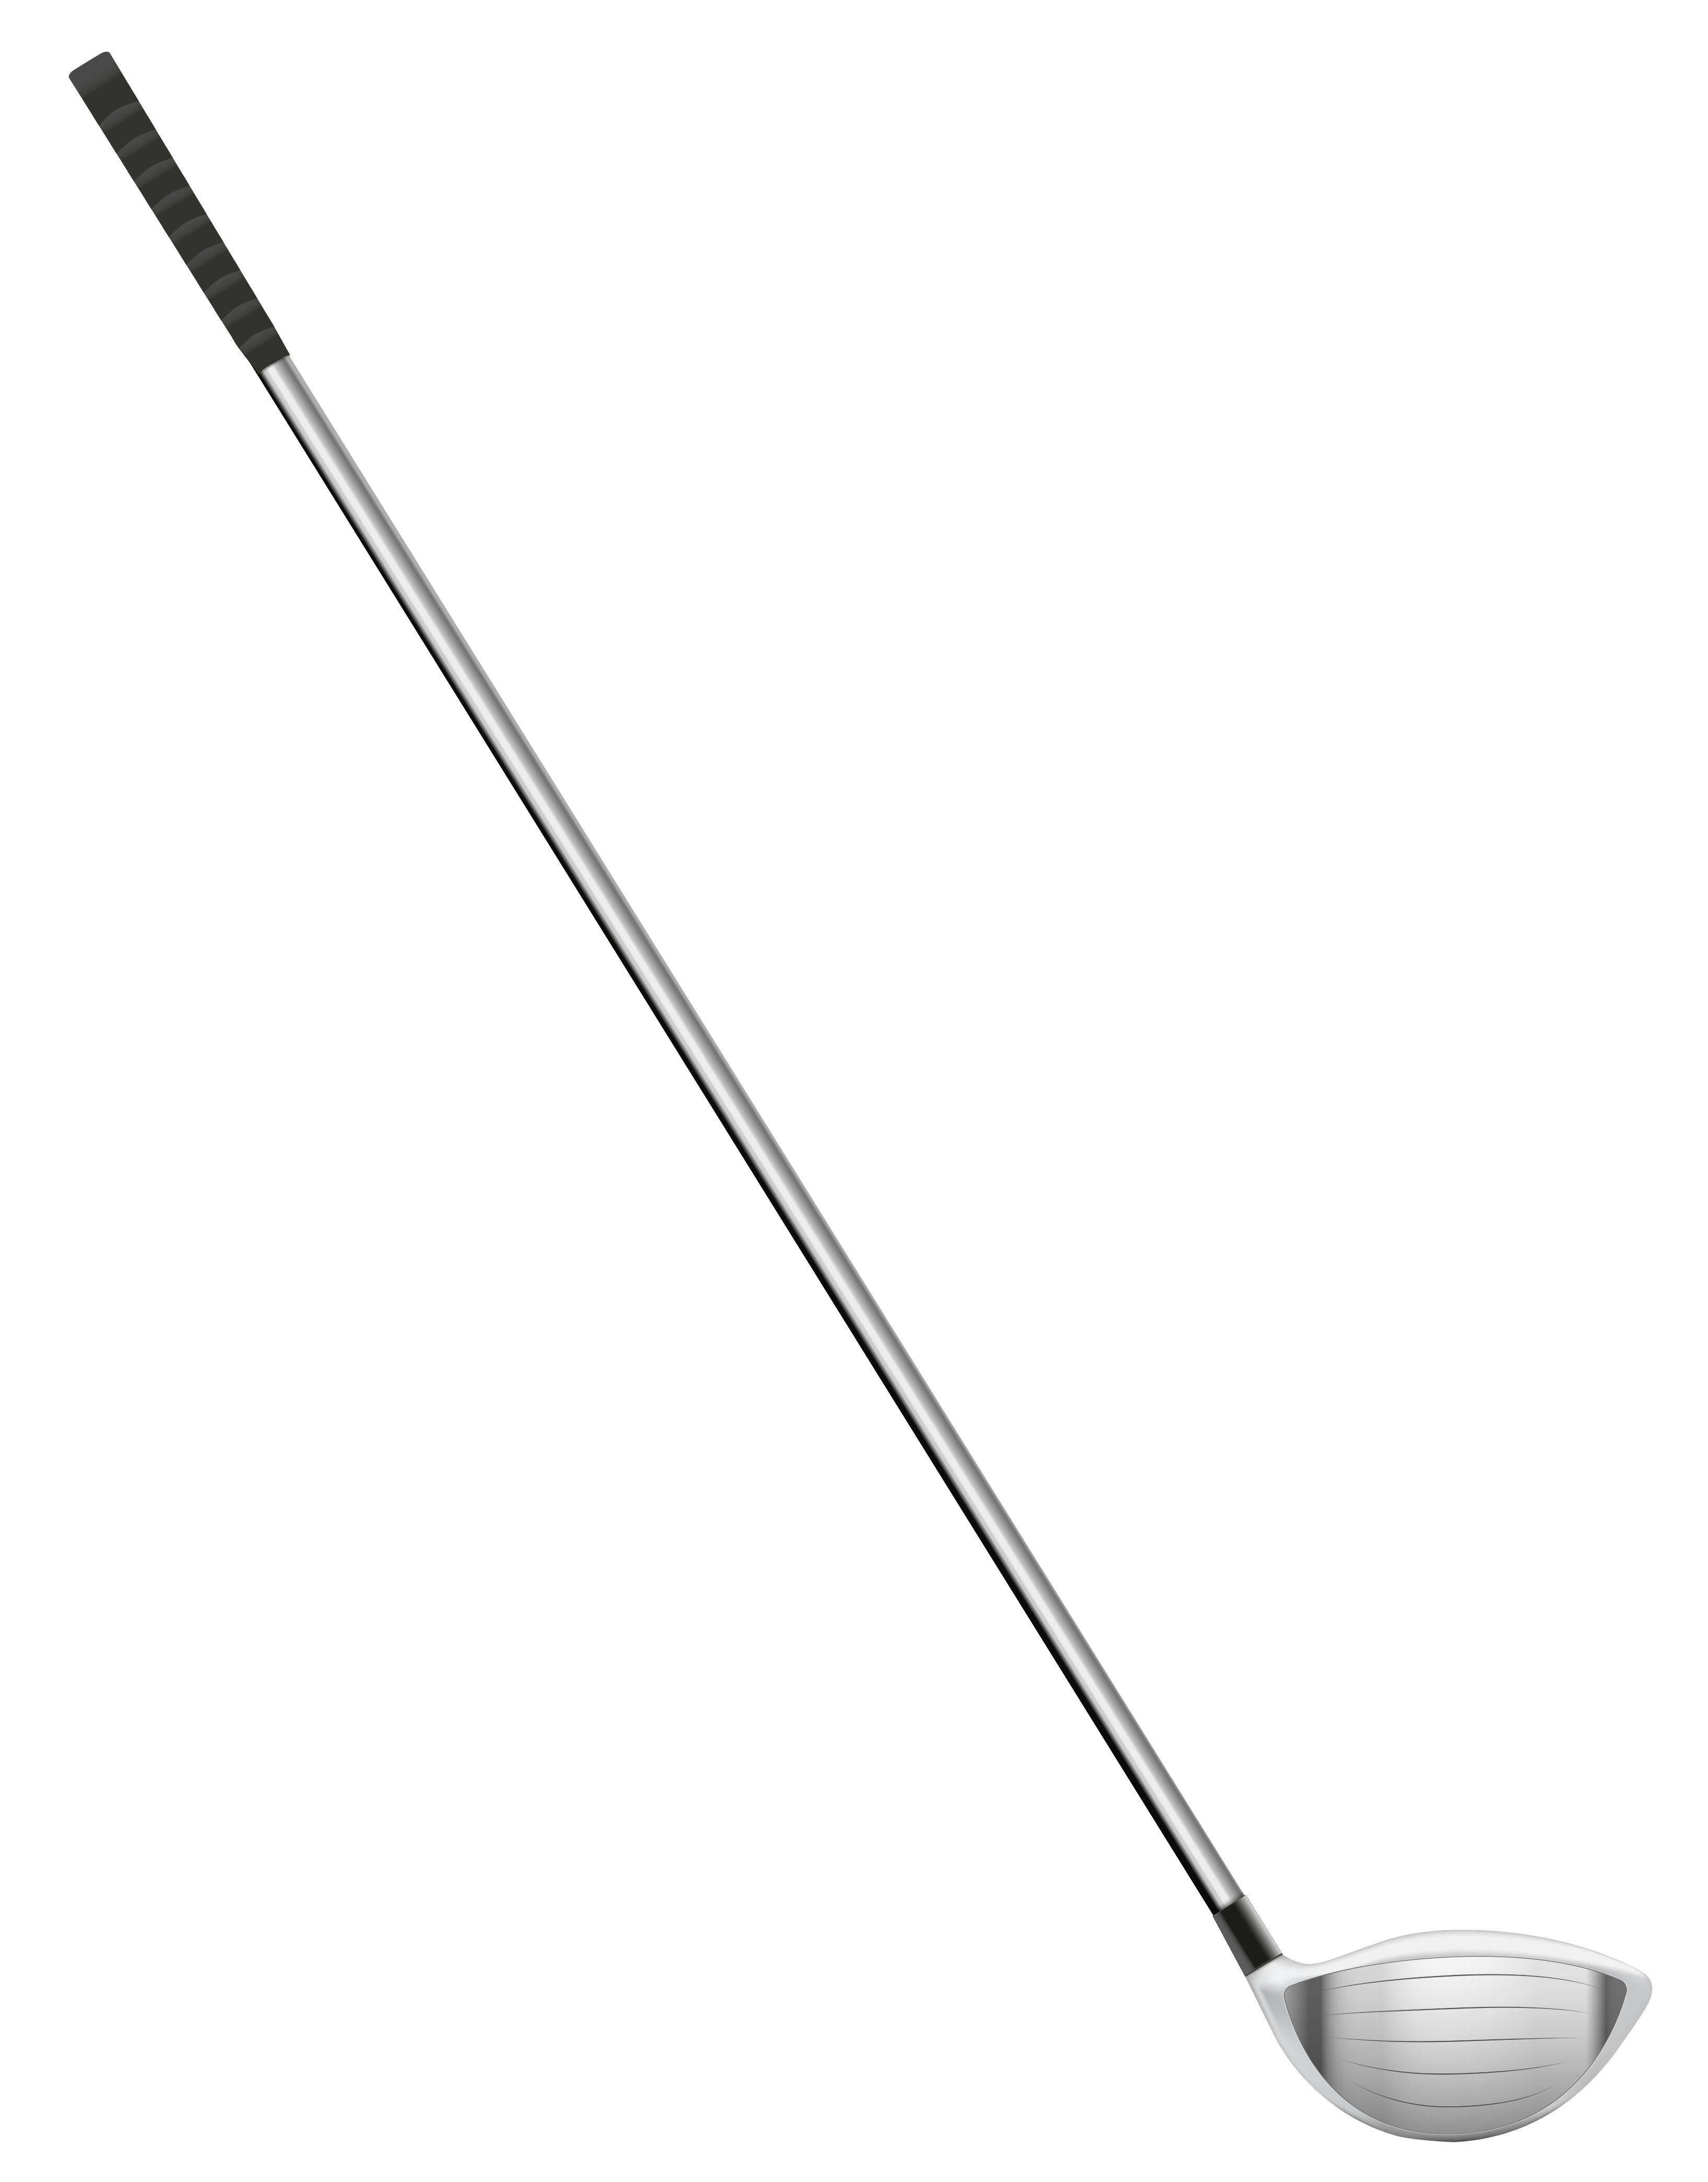 Golf Club Stick Png Clipart Picture Gallery Yopriceville High Quality Images And Transparent Png Free Clipart Clip Art Free Clip Art Golf Clubs